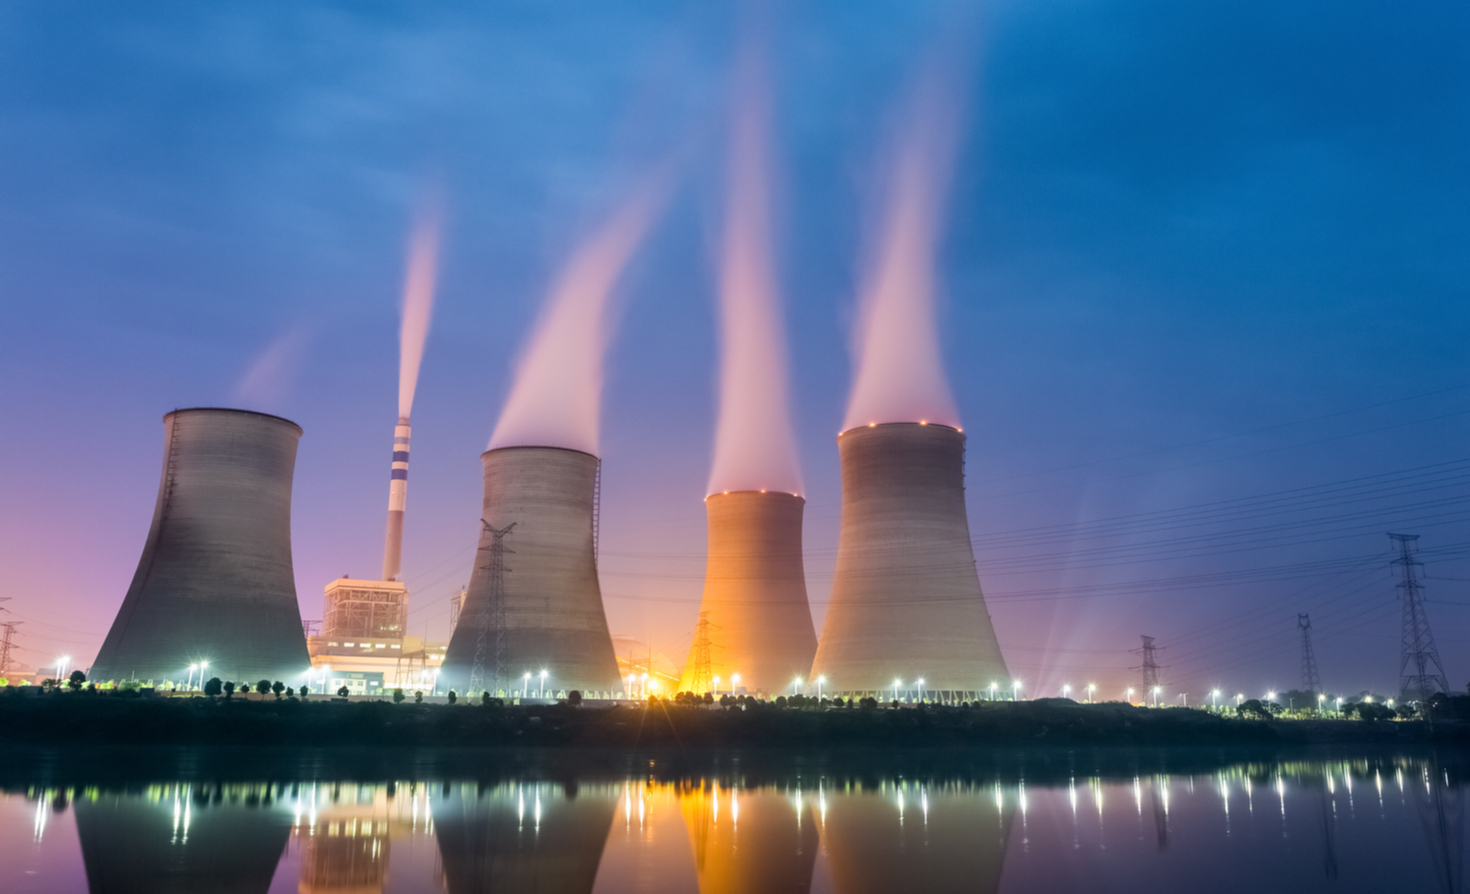 Lockdowns may be a downside risk for the electricity demand growth in FY2022